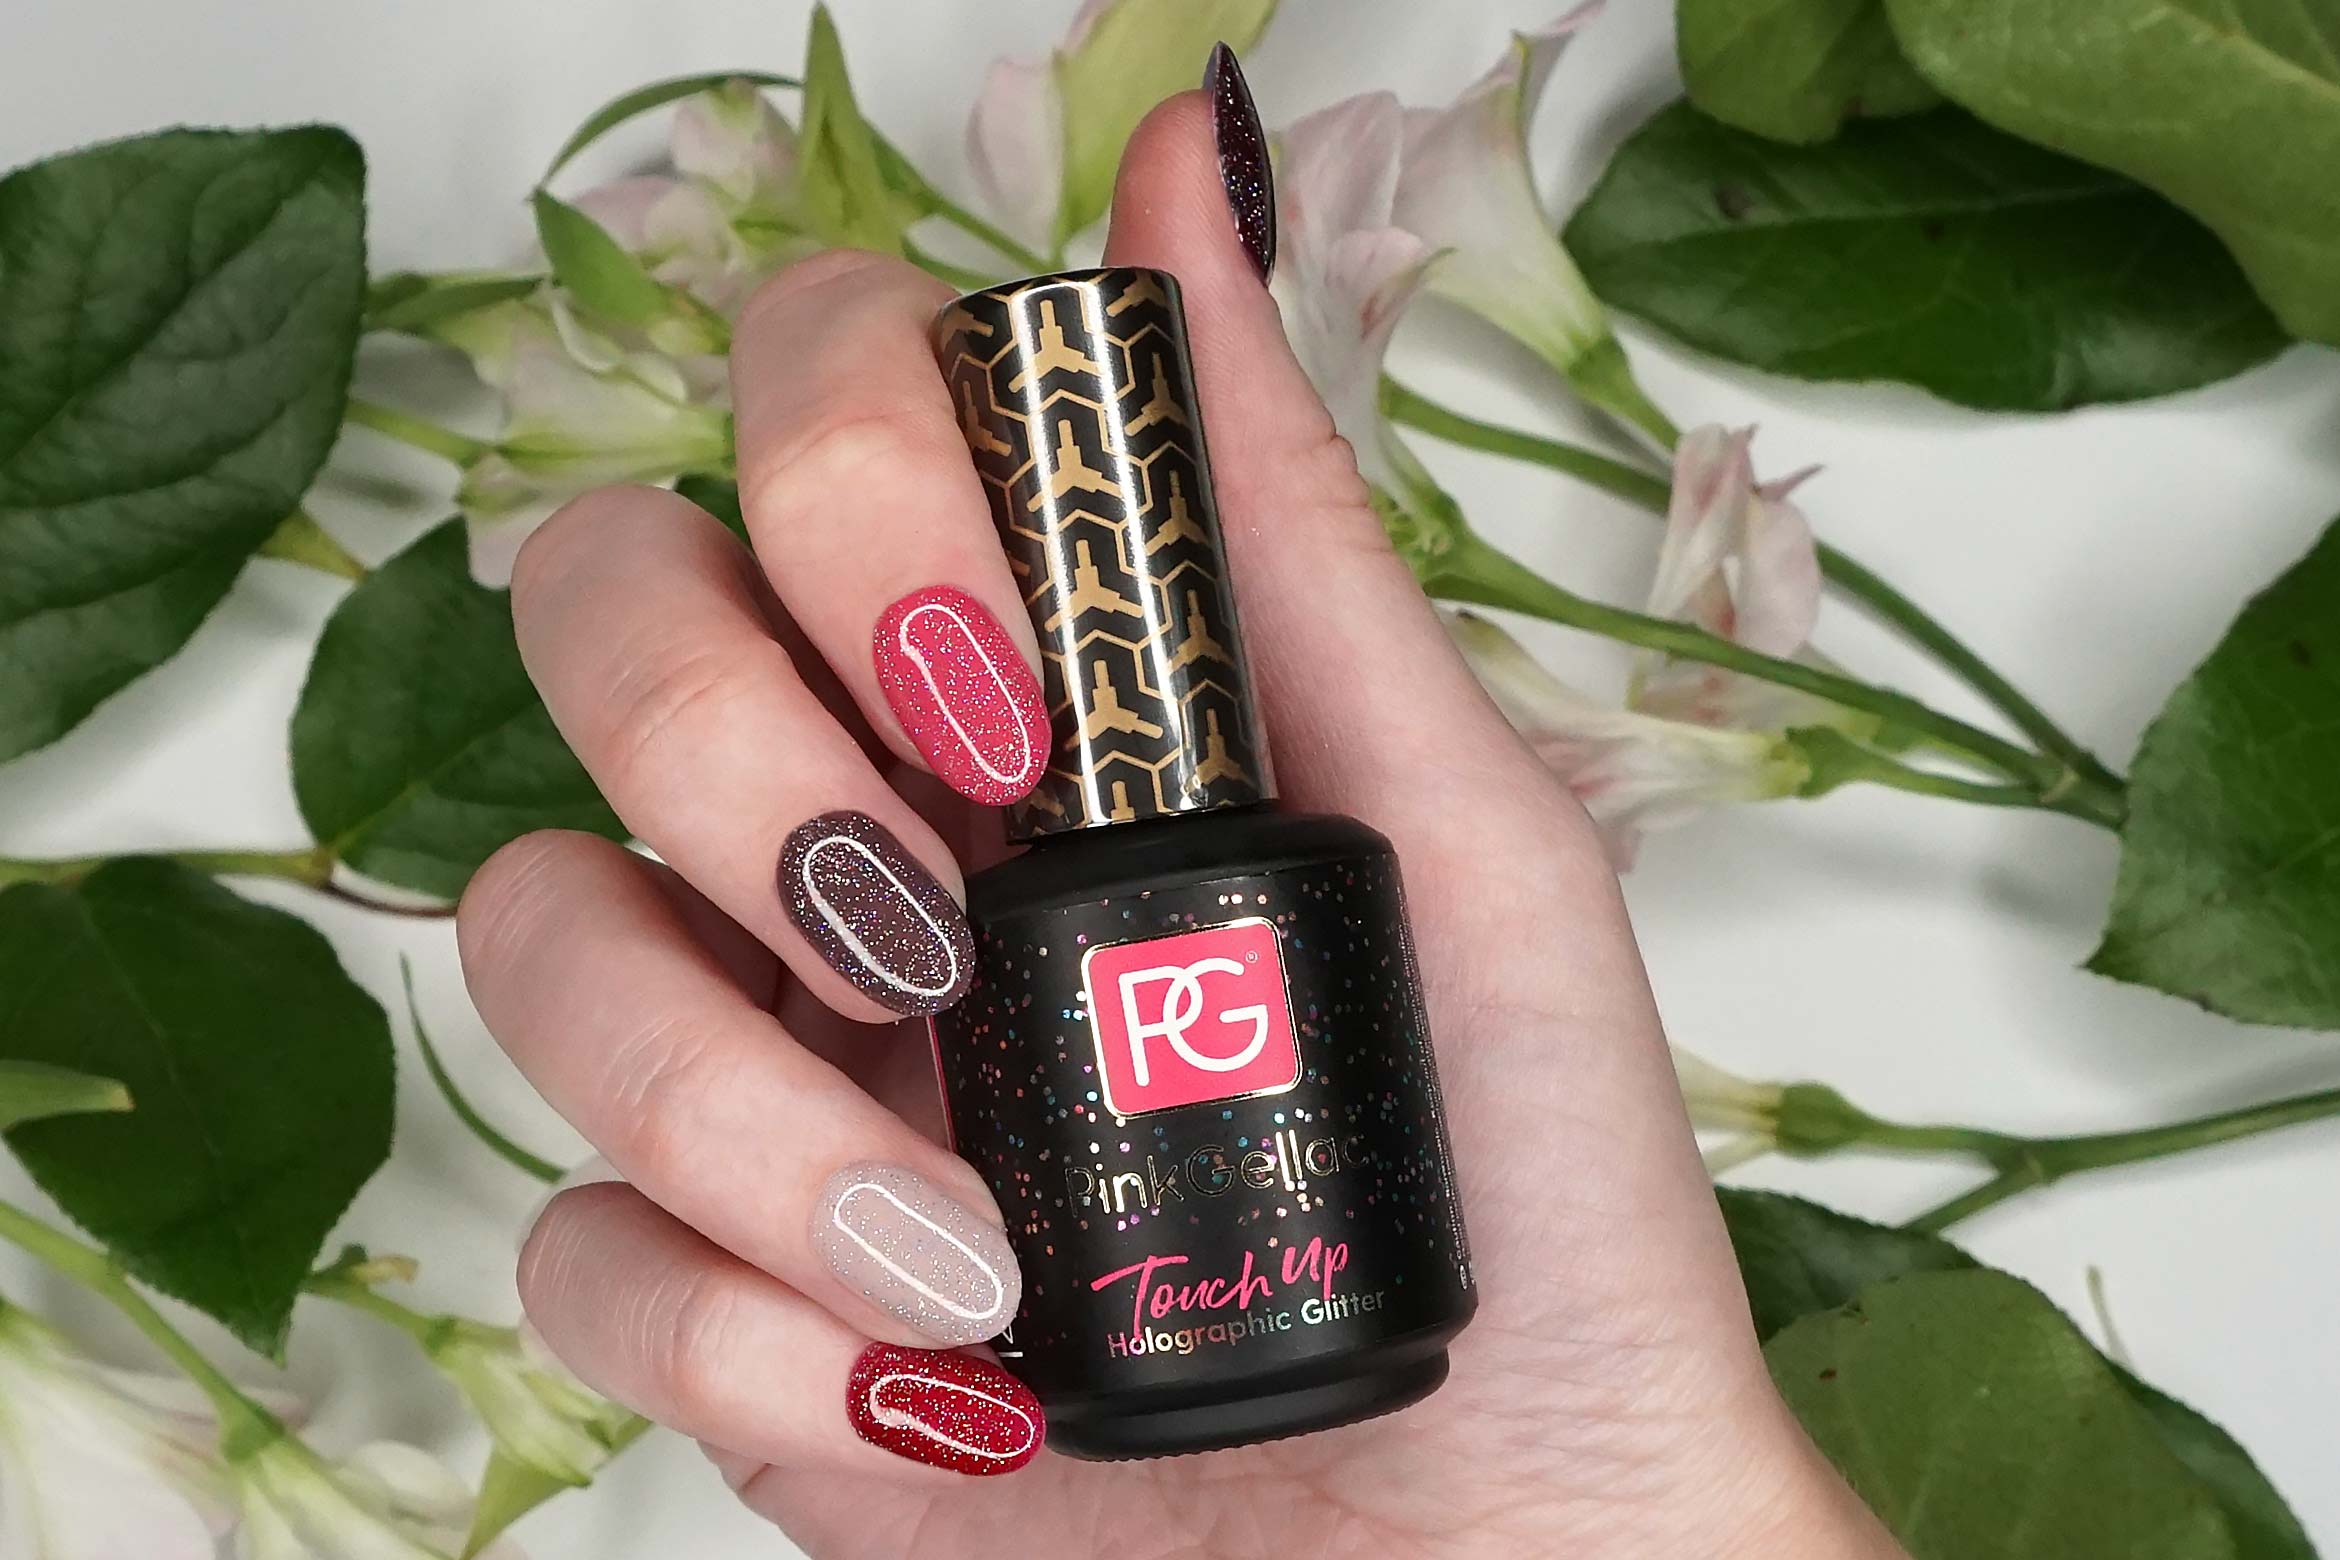 pink-gellac-touch-up-shine-holographic-glitter-swatch-1